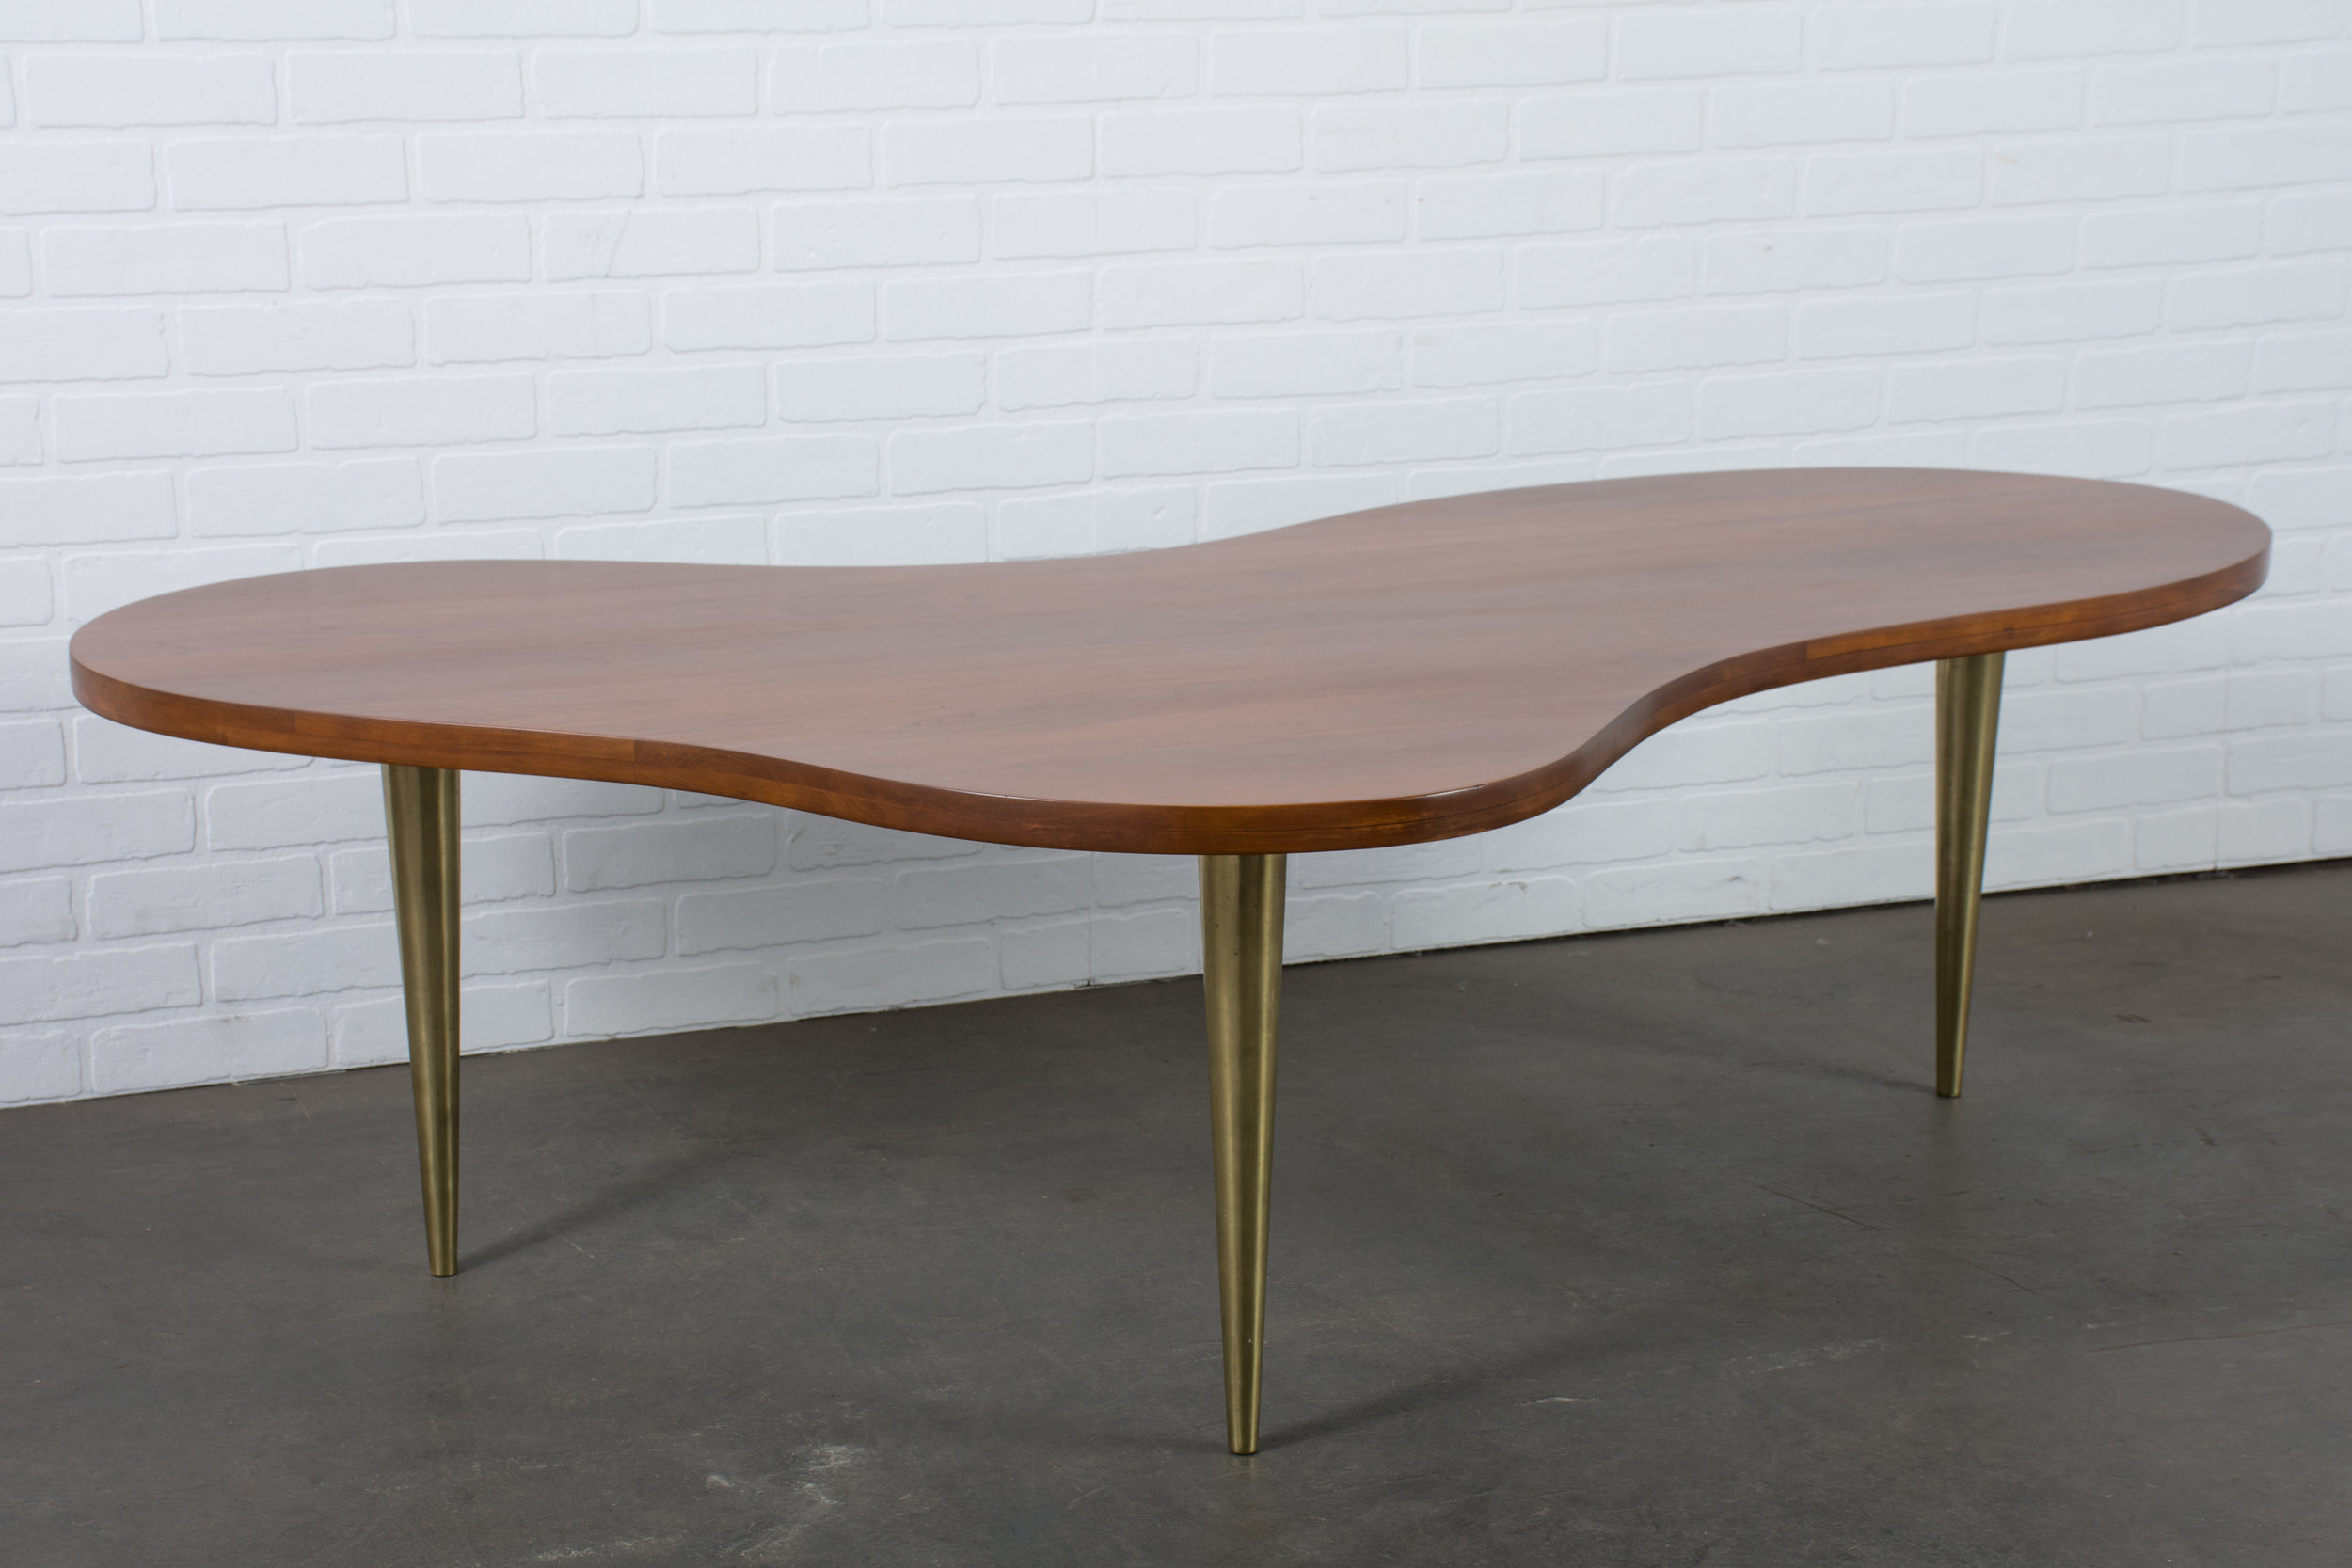 T.H. Robsjohn-Gibbings Biomorphic Coffee Table for Widdicomb